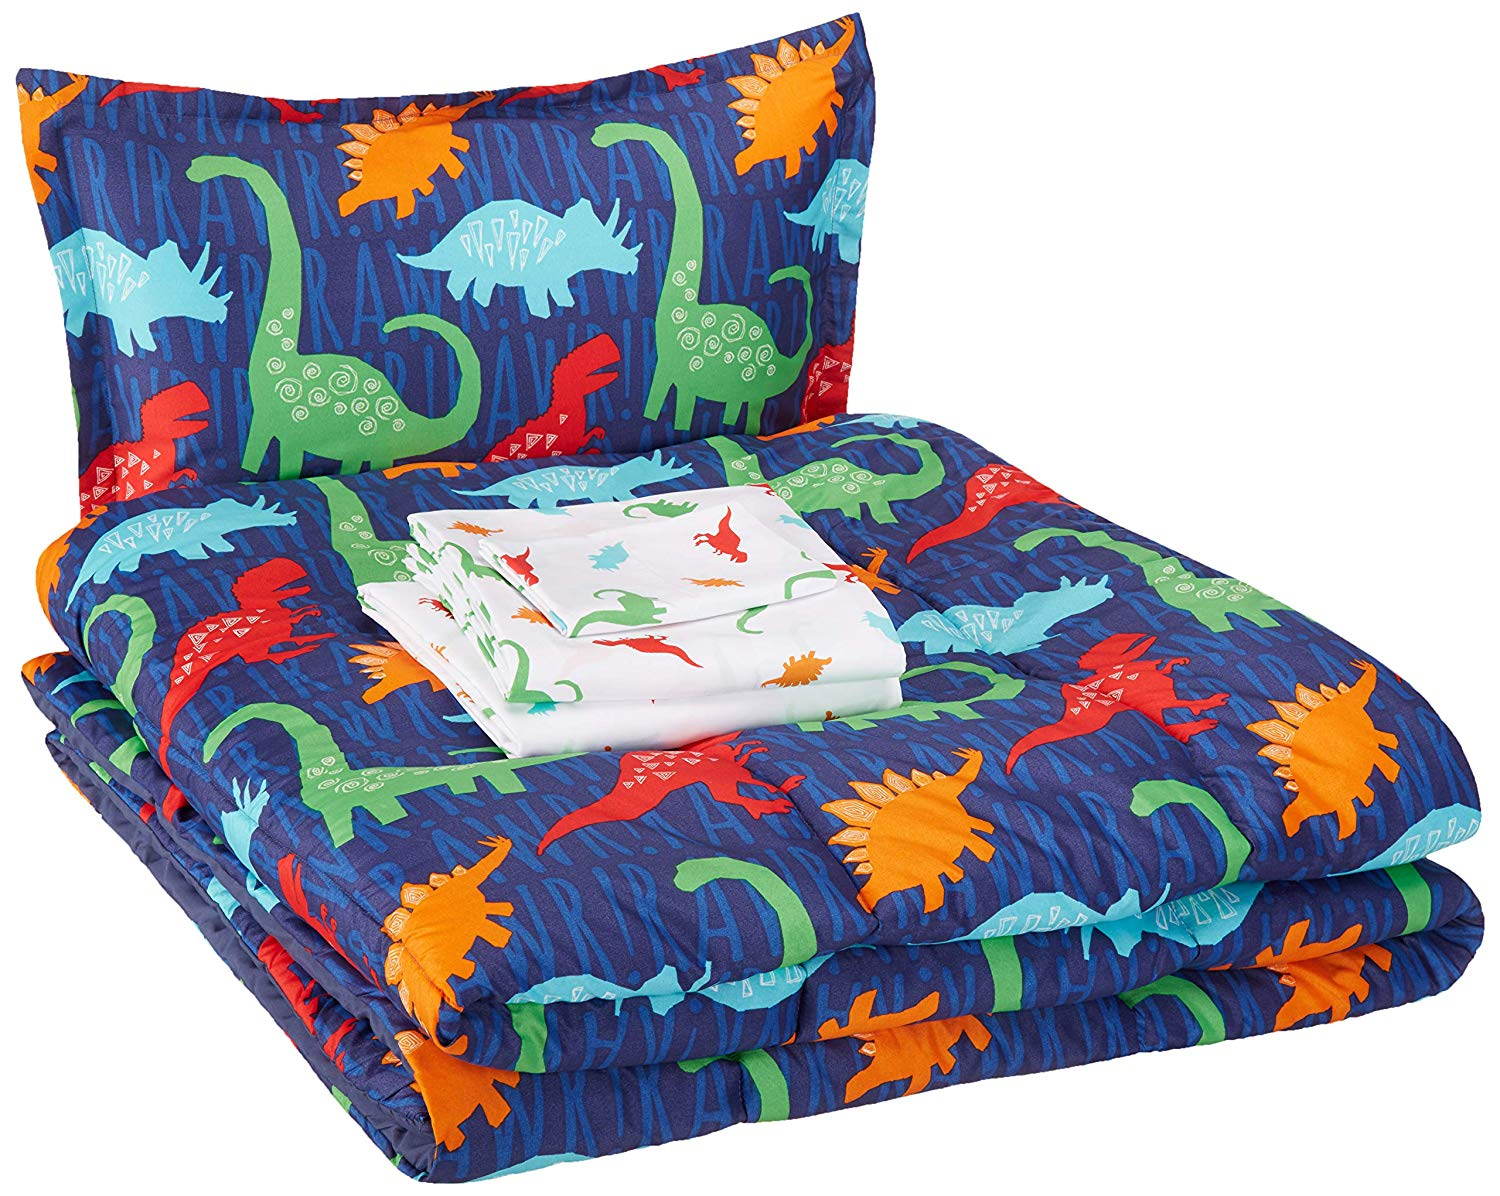 Amazon Basic Easy Wash Microfiber Kid's Bed in a Bag Bedding Set Twin Multi Color Dinosaurs